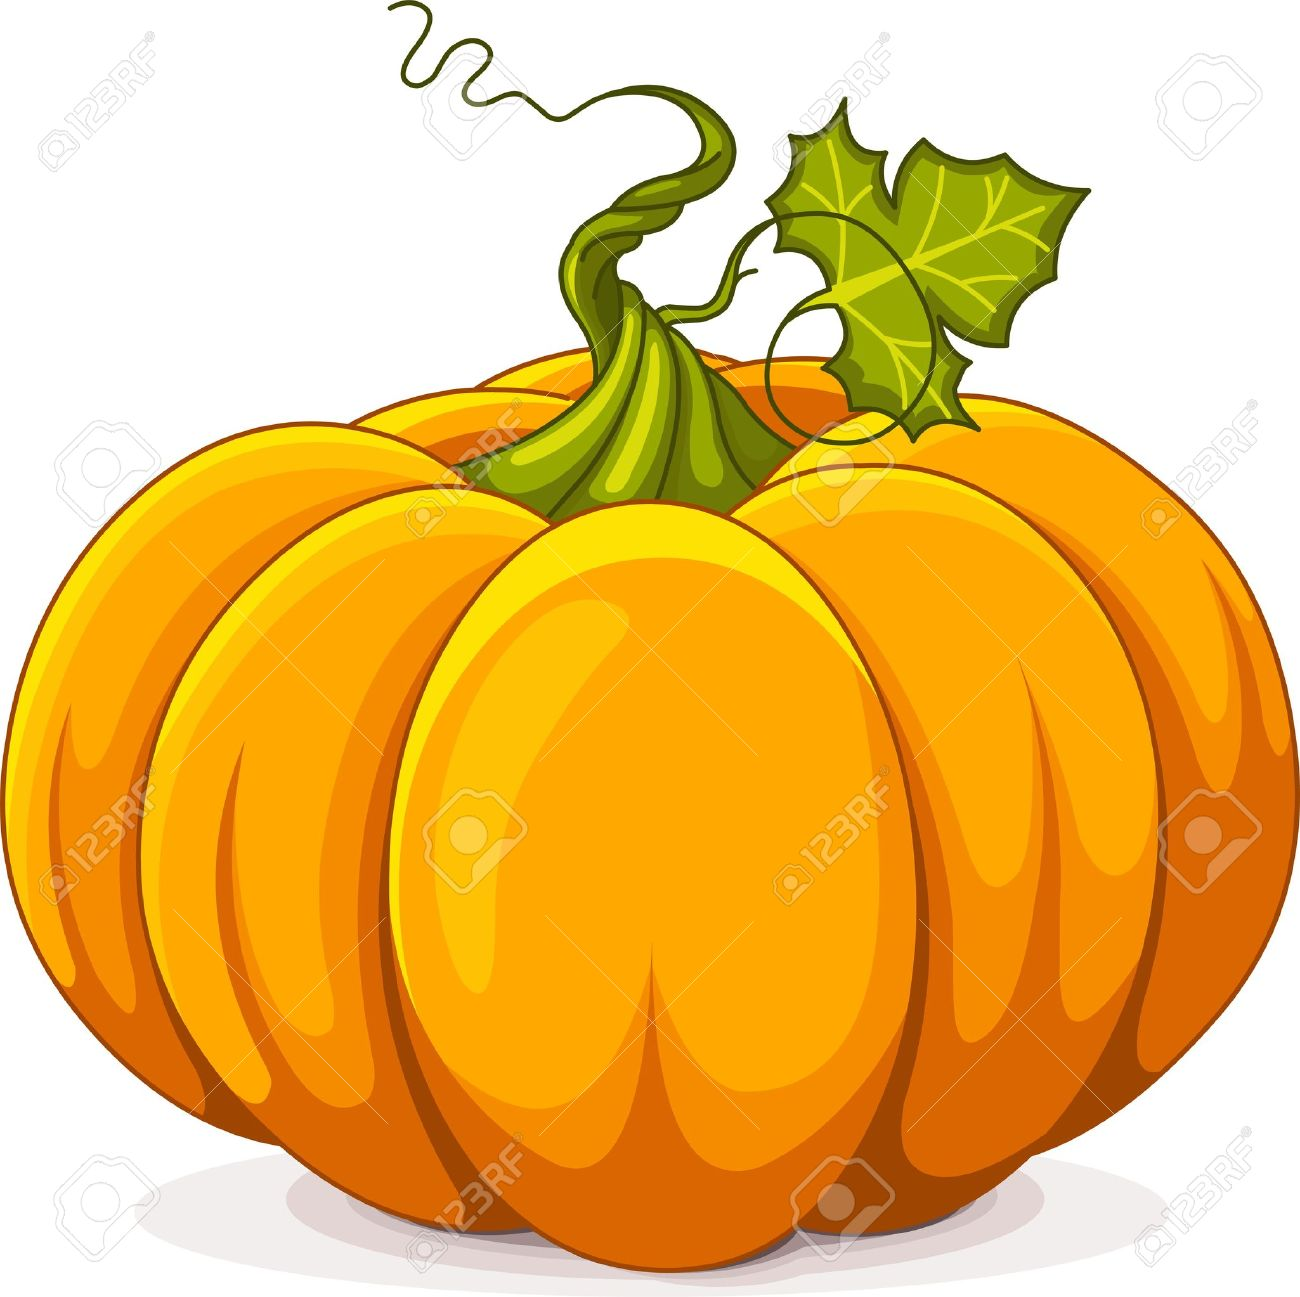 Illustration Of Autumn Pumpkin Royalty Free Cliparts, Vectors, And.